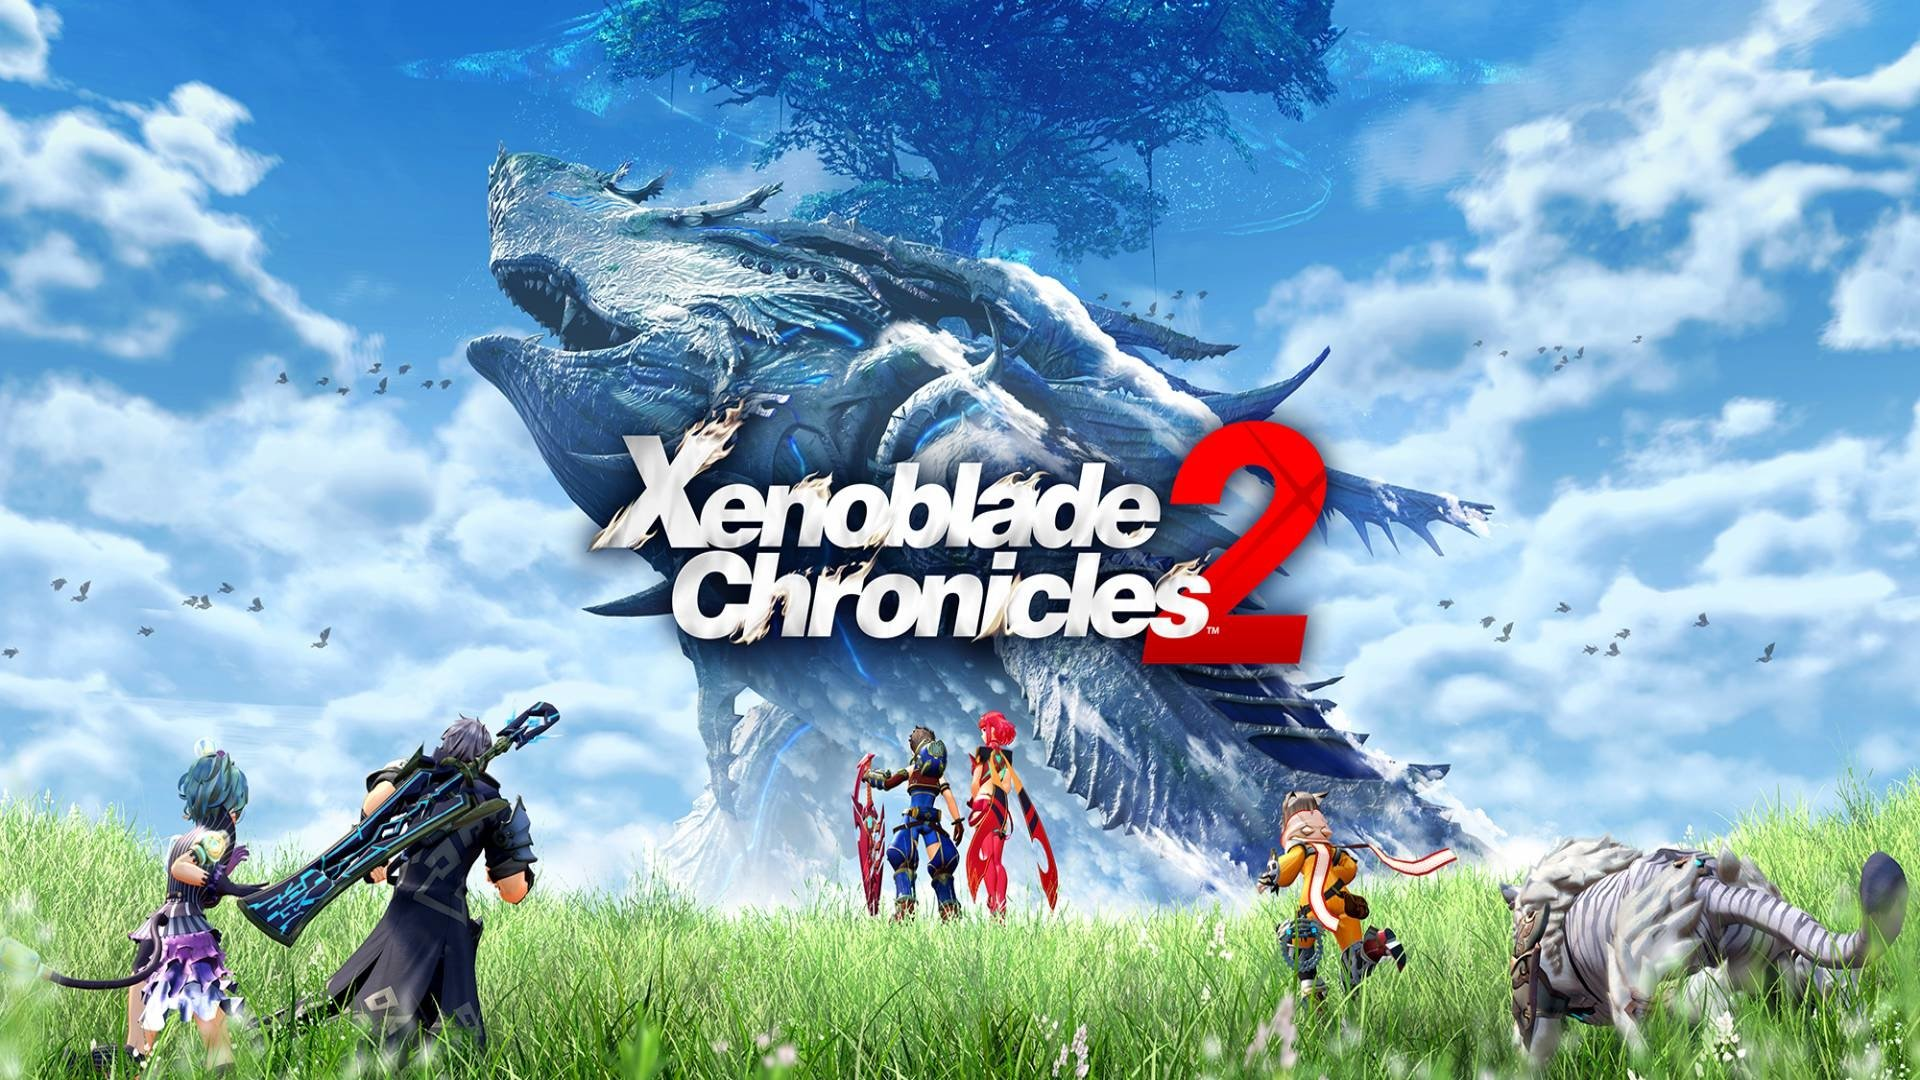 Xenoblade Chronicles 2 Hd Wallpaper Background Image 1920x1080 Id 889181 Wallpaper Abyss